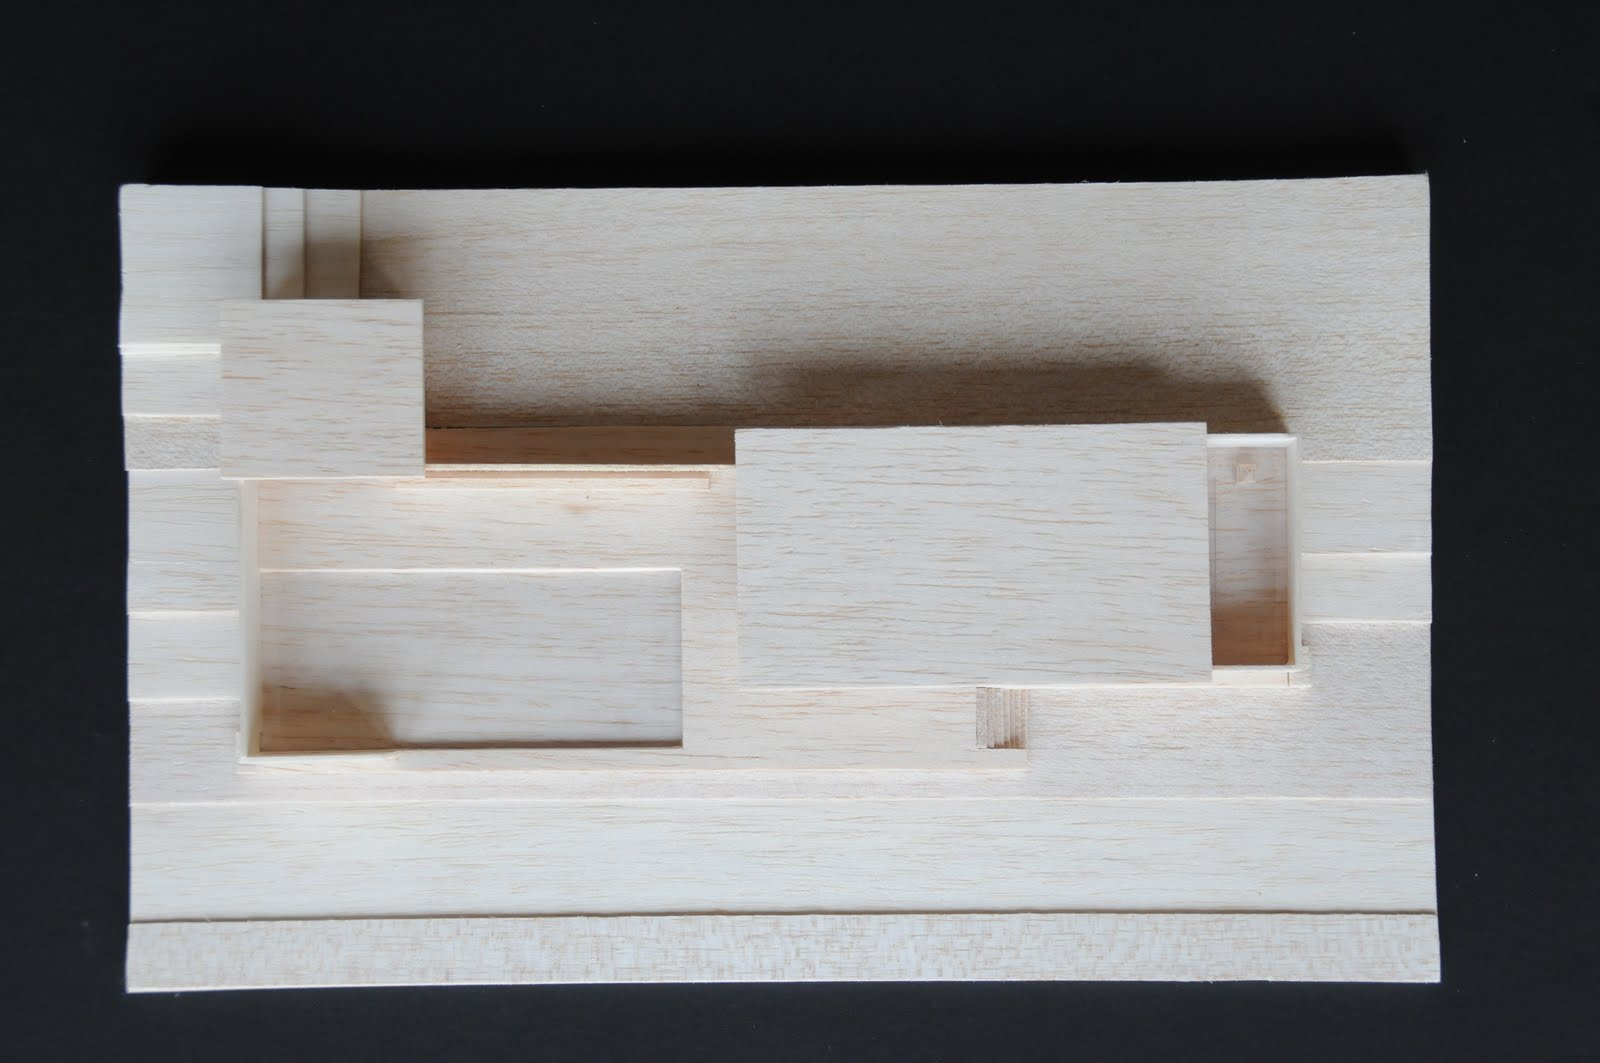 This Is A Model Of The Barcelona Pavilion (at 1:200) By Ludwig Mies Van Der  Rohe. This Building Is Simplistic In Its Rectilinear Form, And Reflects An  Open ...